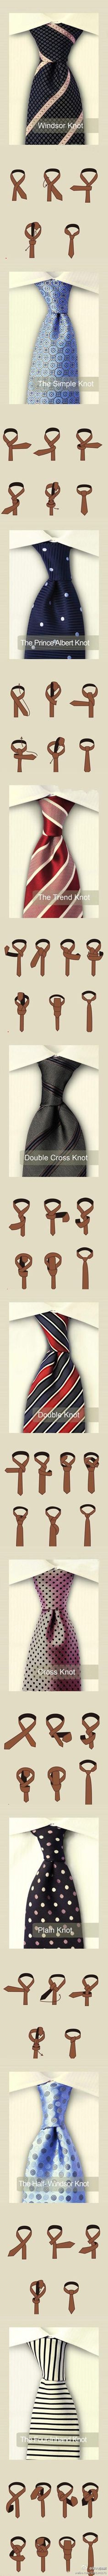 Different ways to tie a tie...